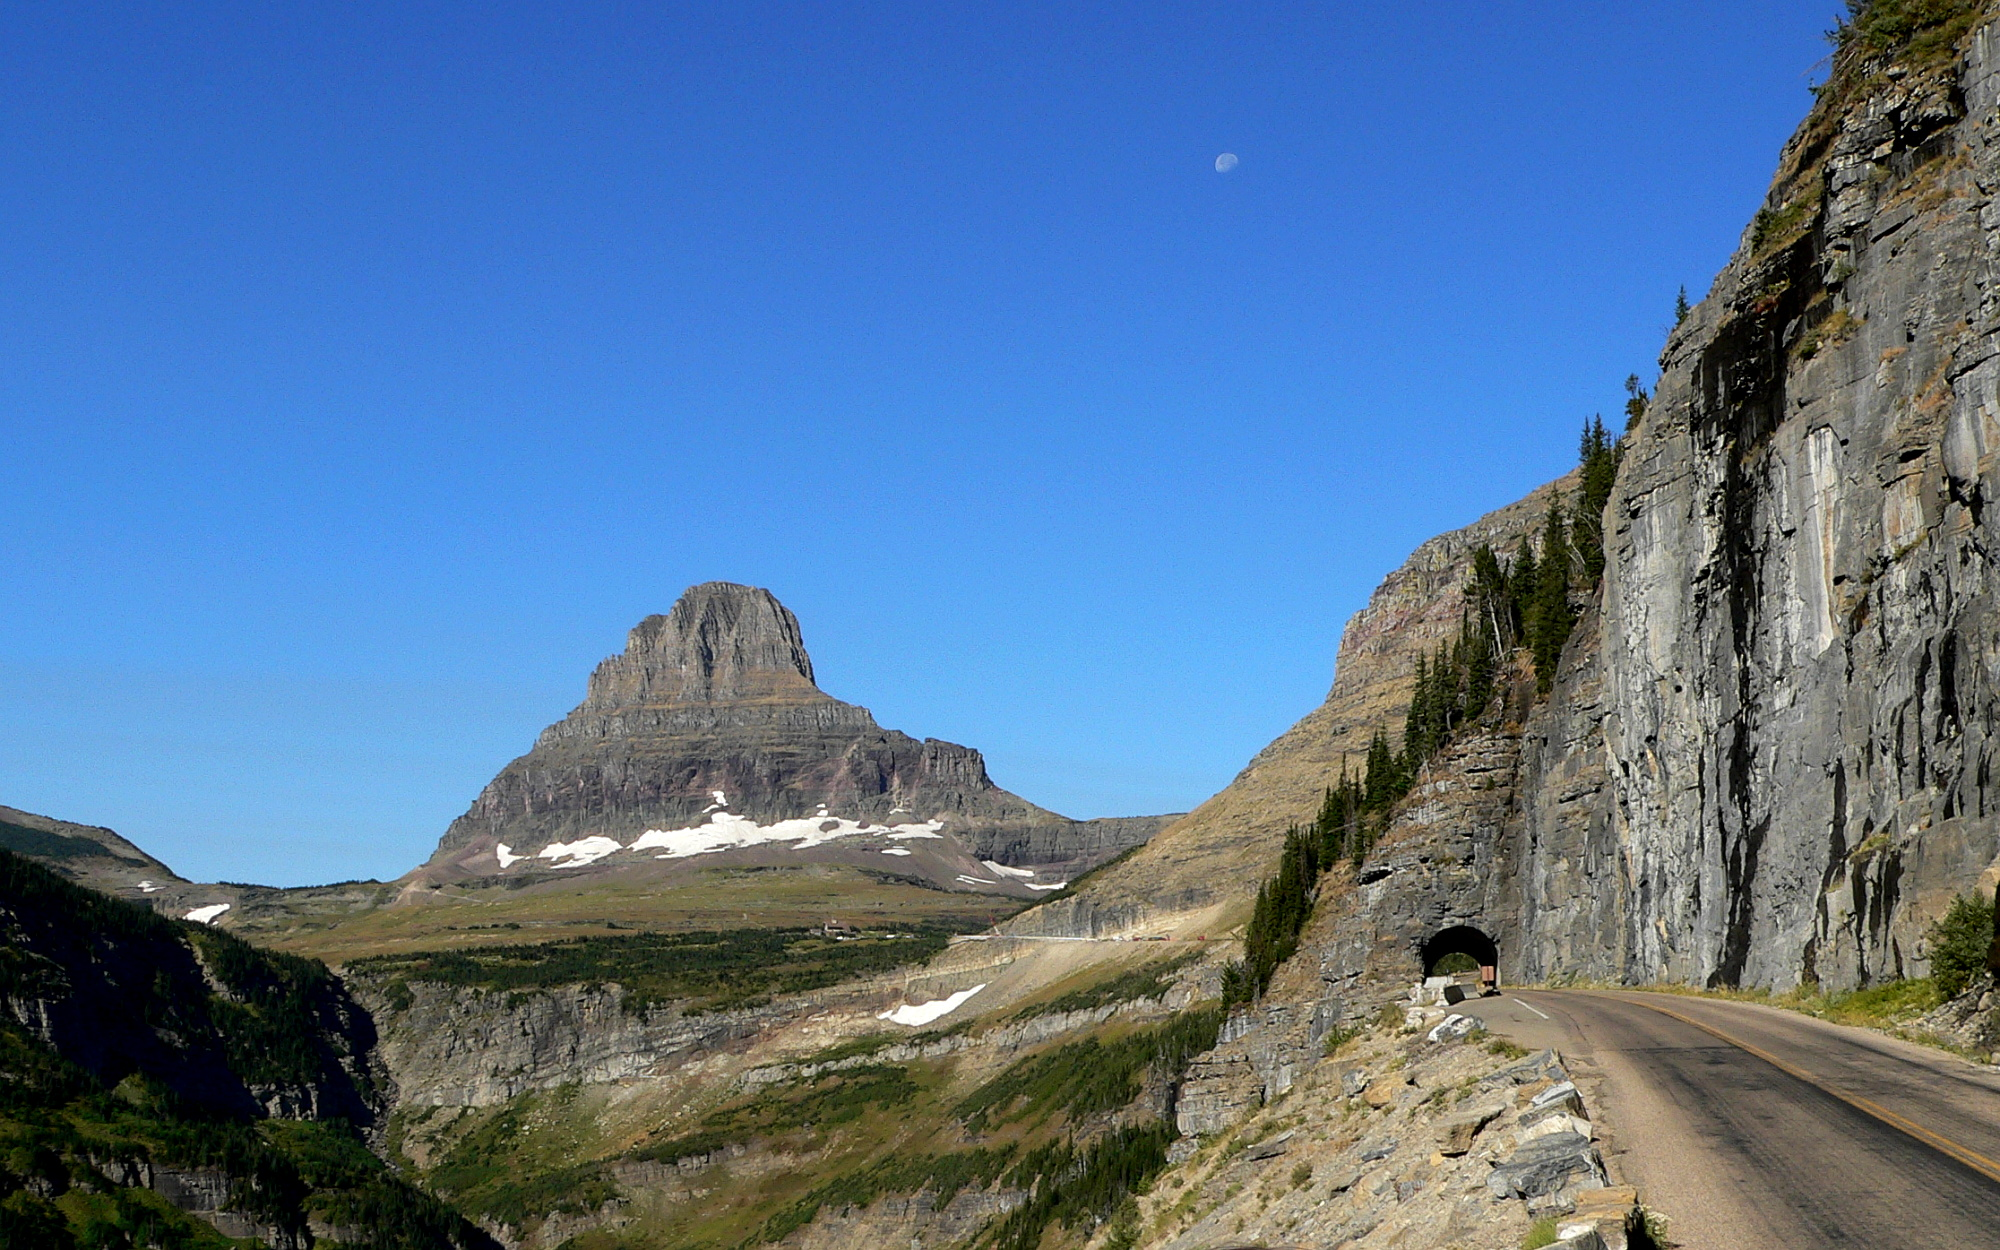 File:Going-to-the-Sun Road-27527-2.jpg